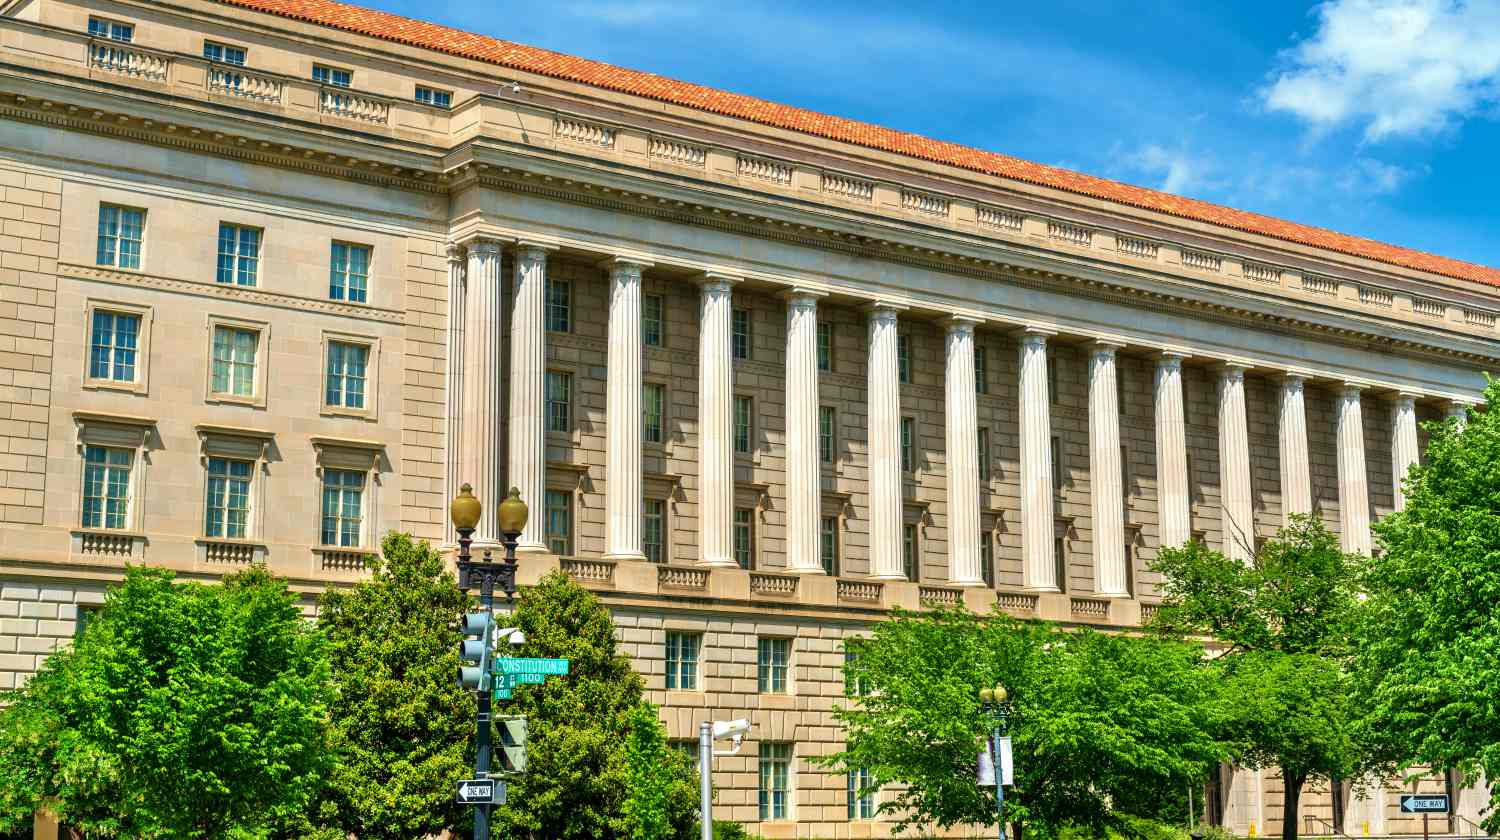 Feature | IRS building Washington DC | Understanding the IRS Collections Process To Quickly Resolve Taxes | Irs collects taxes